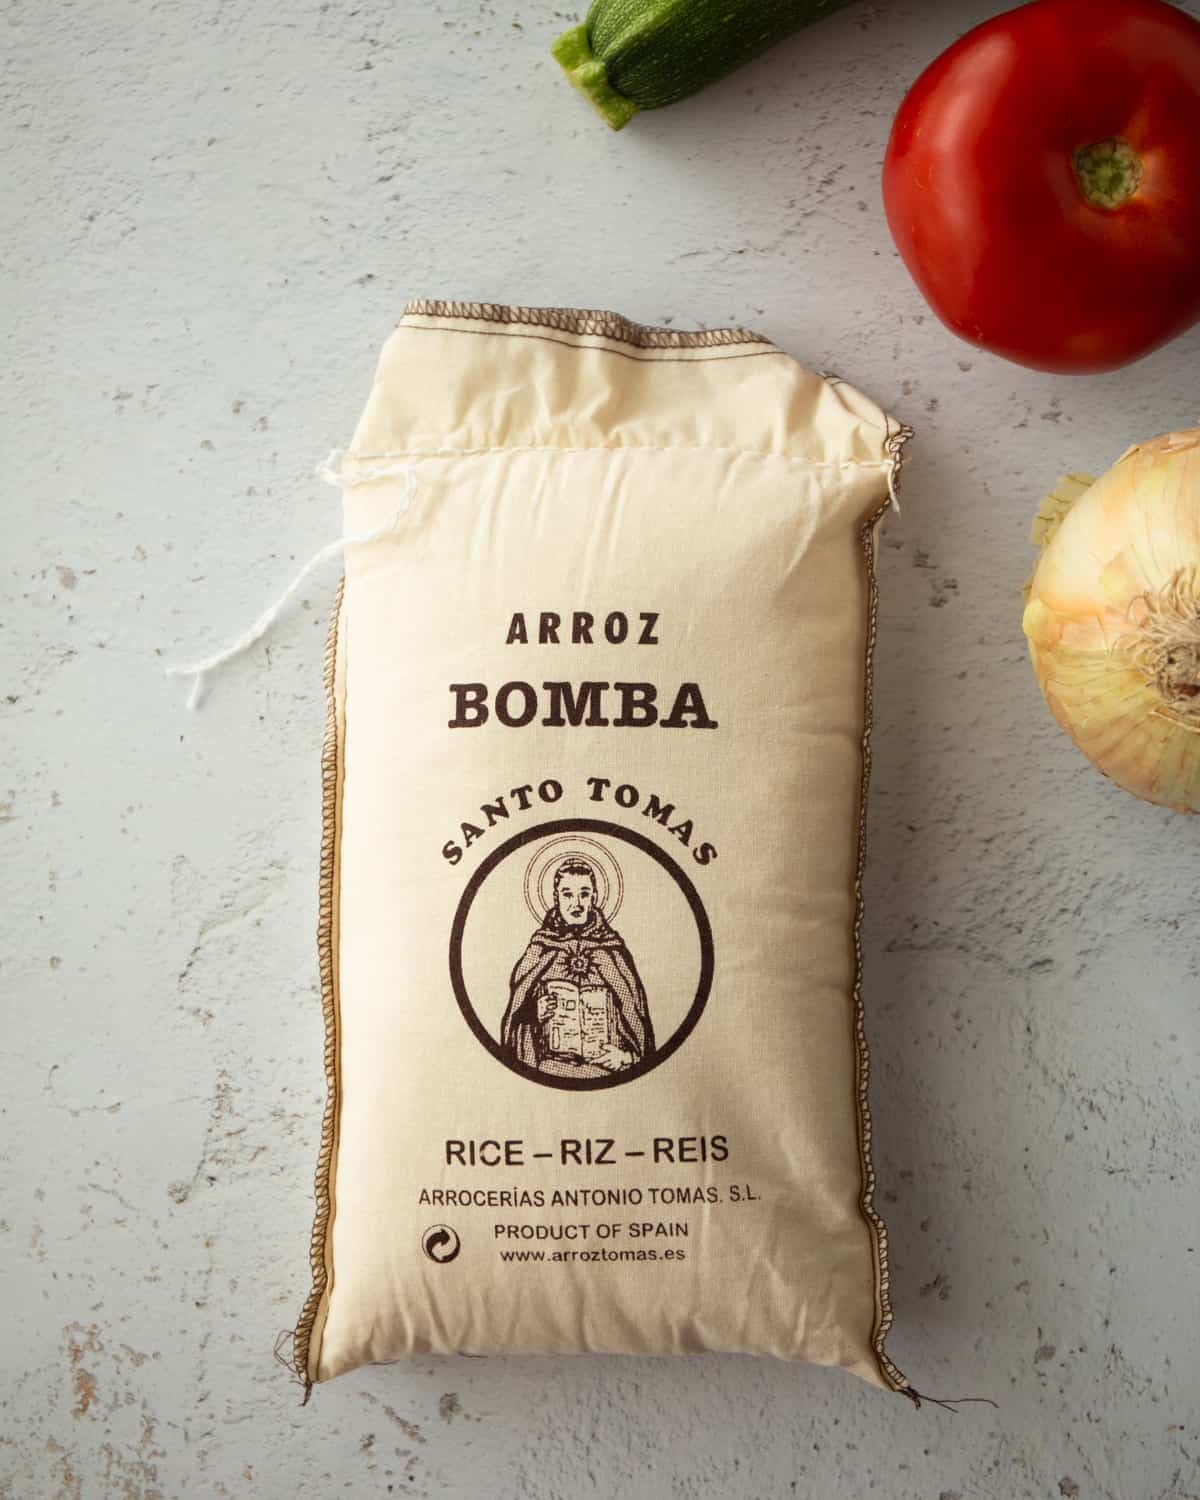 a bag of bomba rice on a grey countertop